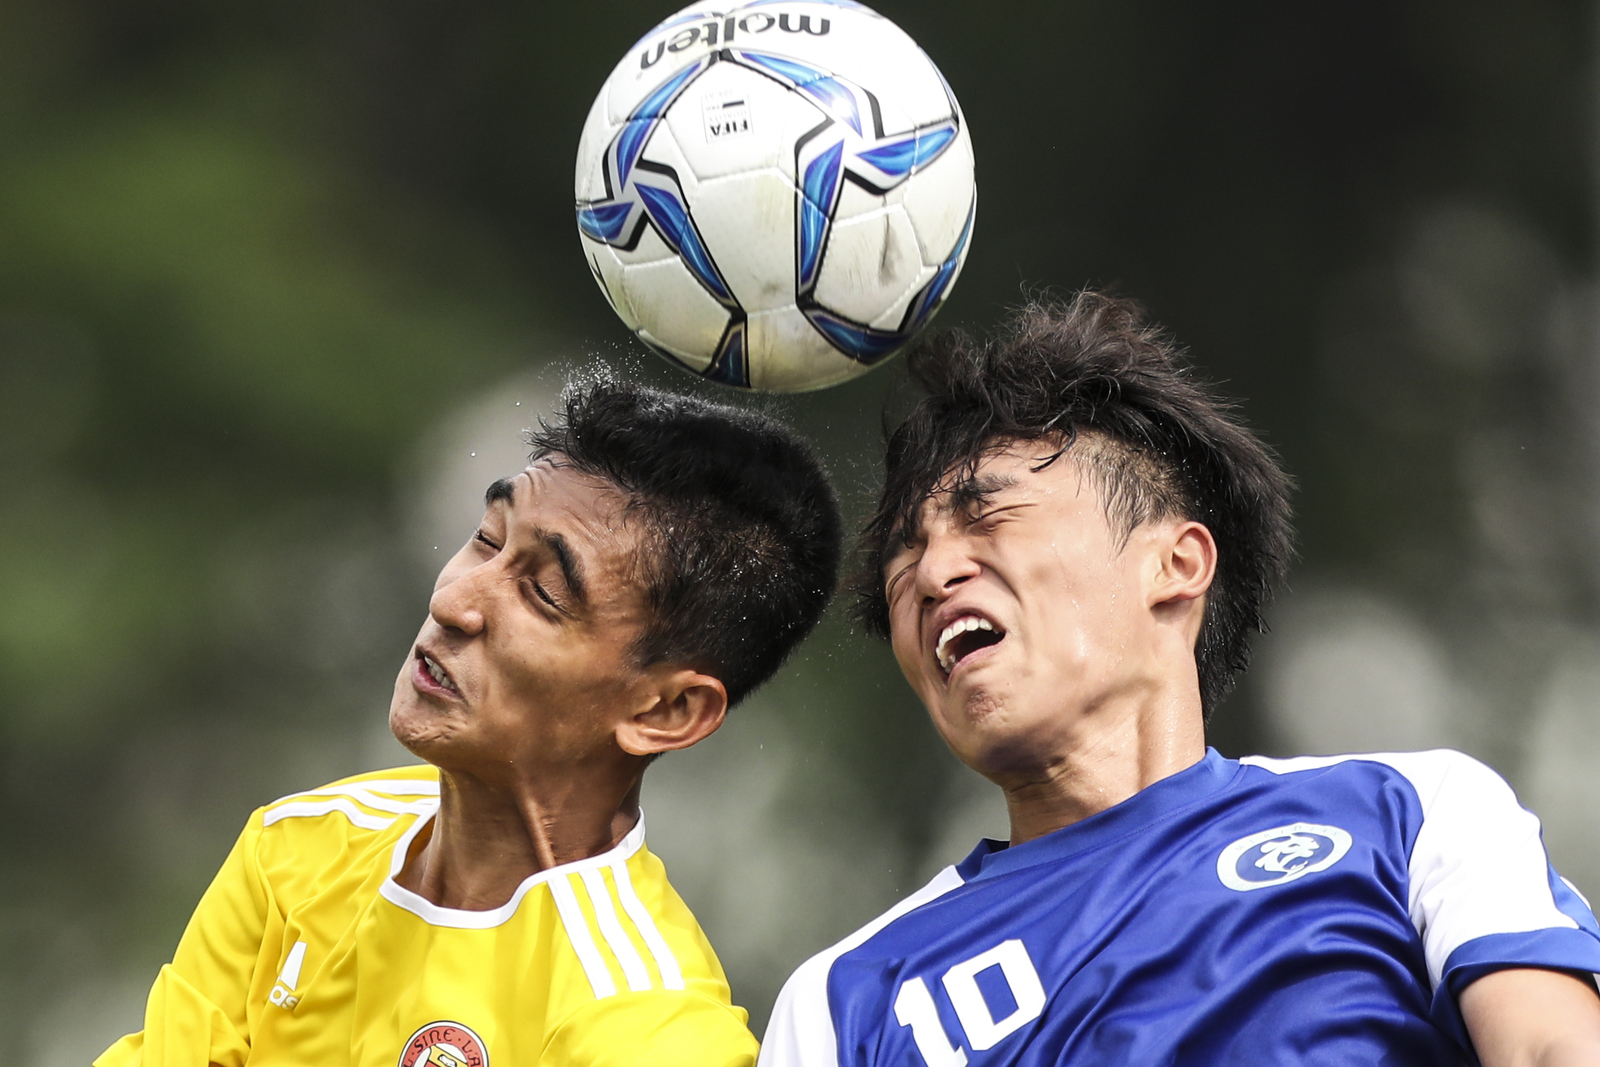 Muhammad Umar (left) of Victoria Junior College and Bradley Leong of Meridian Junior College contest a header during the National Schools boys' 'A'Division football final at Jalan Besar Stadium on May 14,2018 in Singapore. (Photo © Yong Teck Lim/Red Sports)